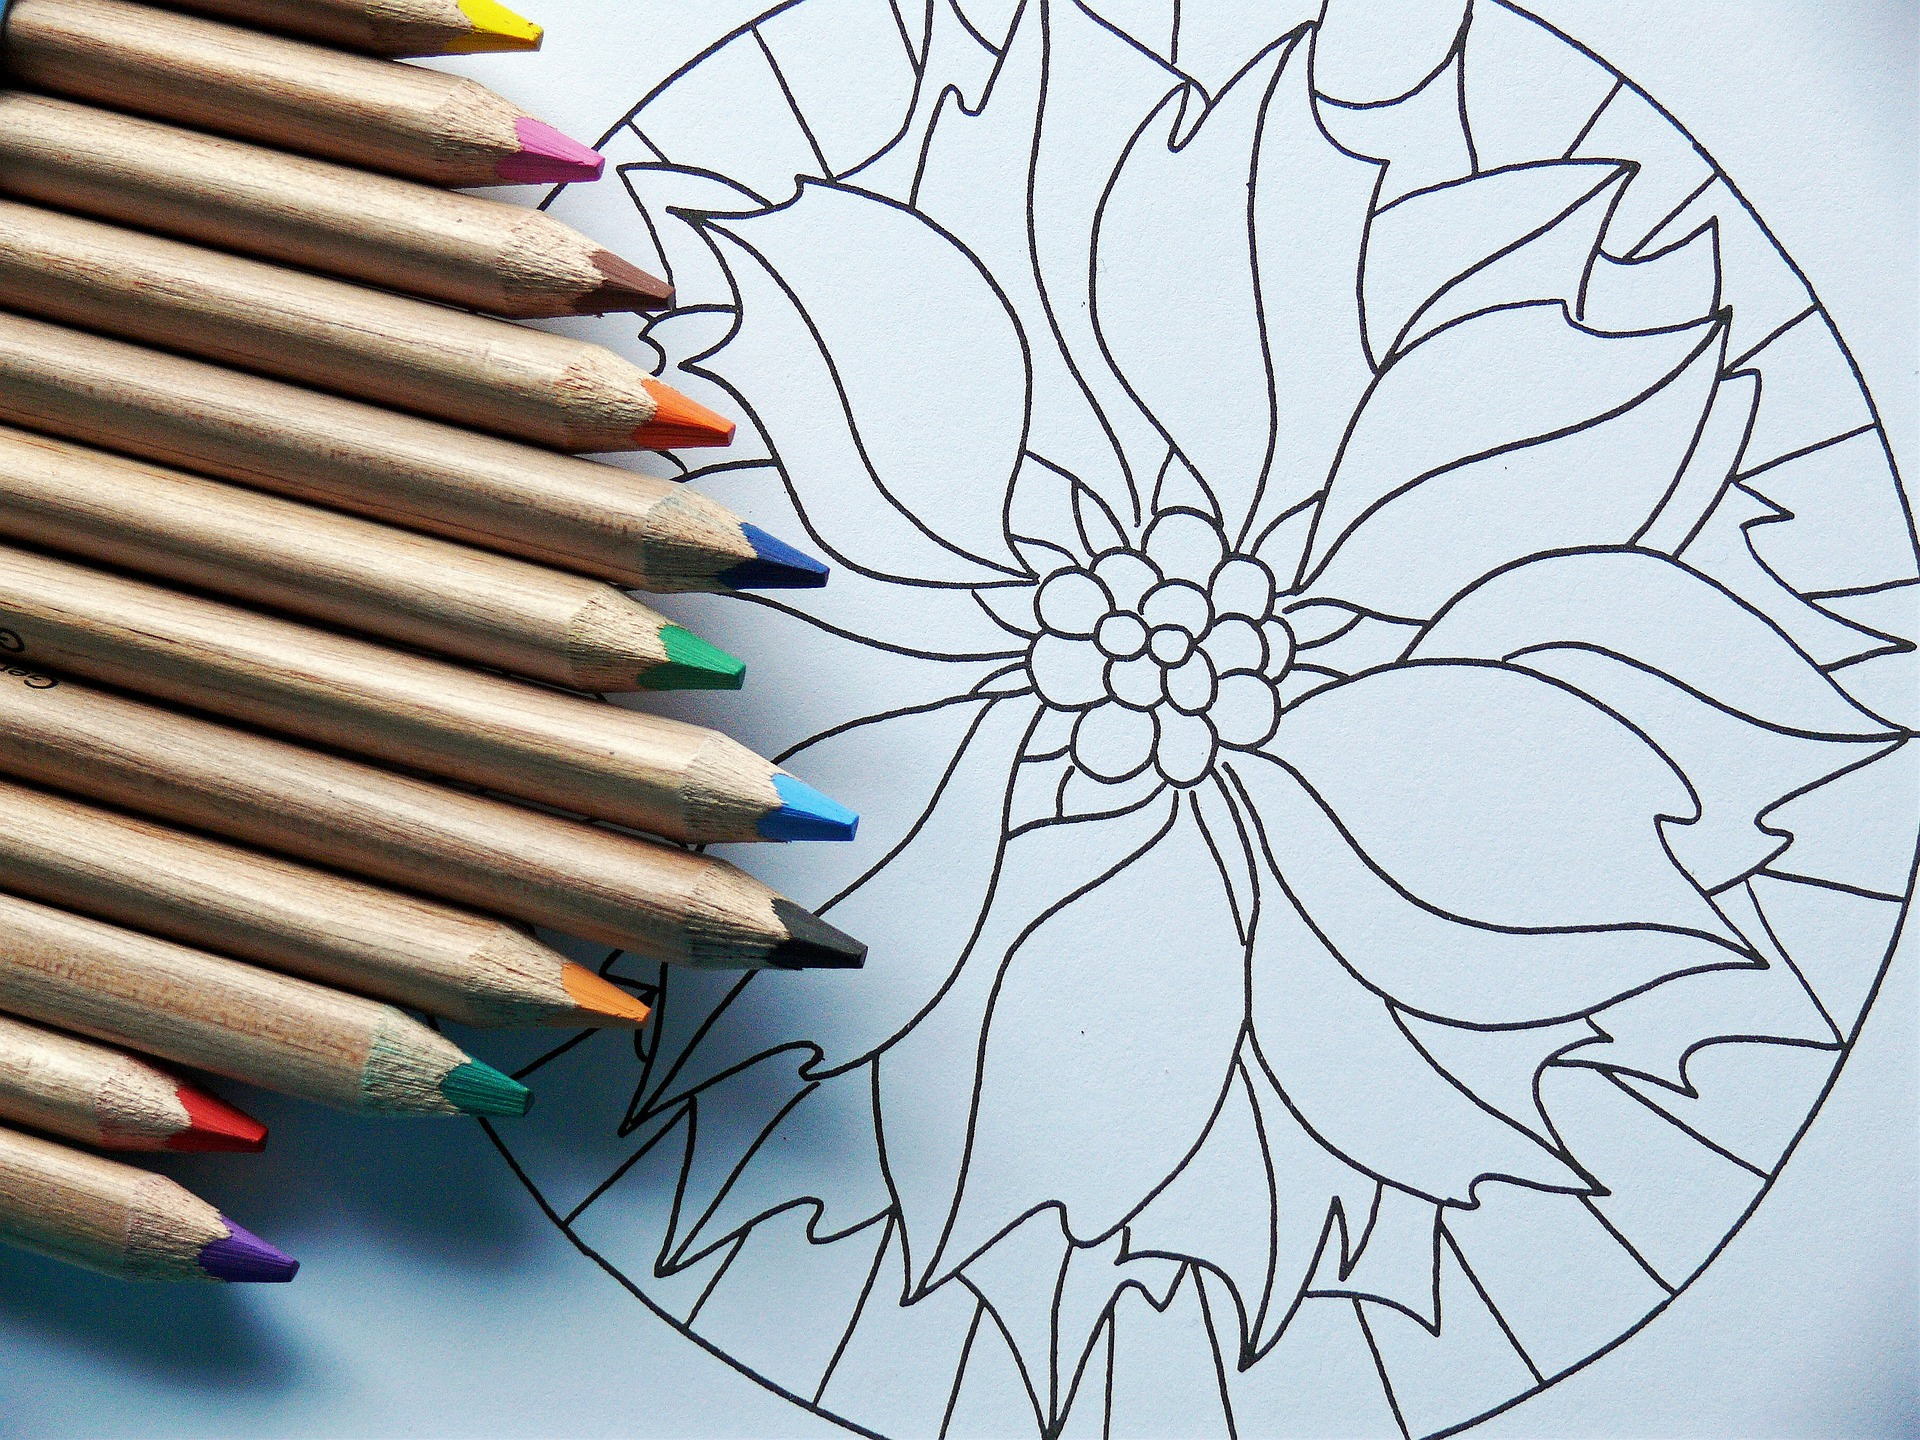 100 Art Therapy Exercises - The Updated and Improved List - The Art